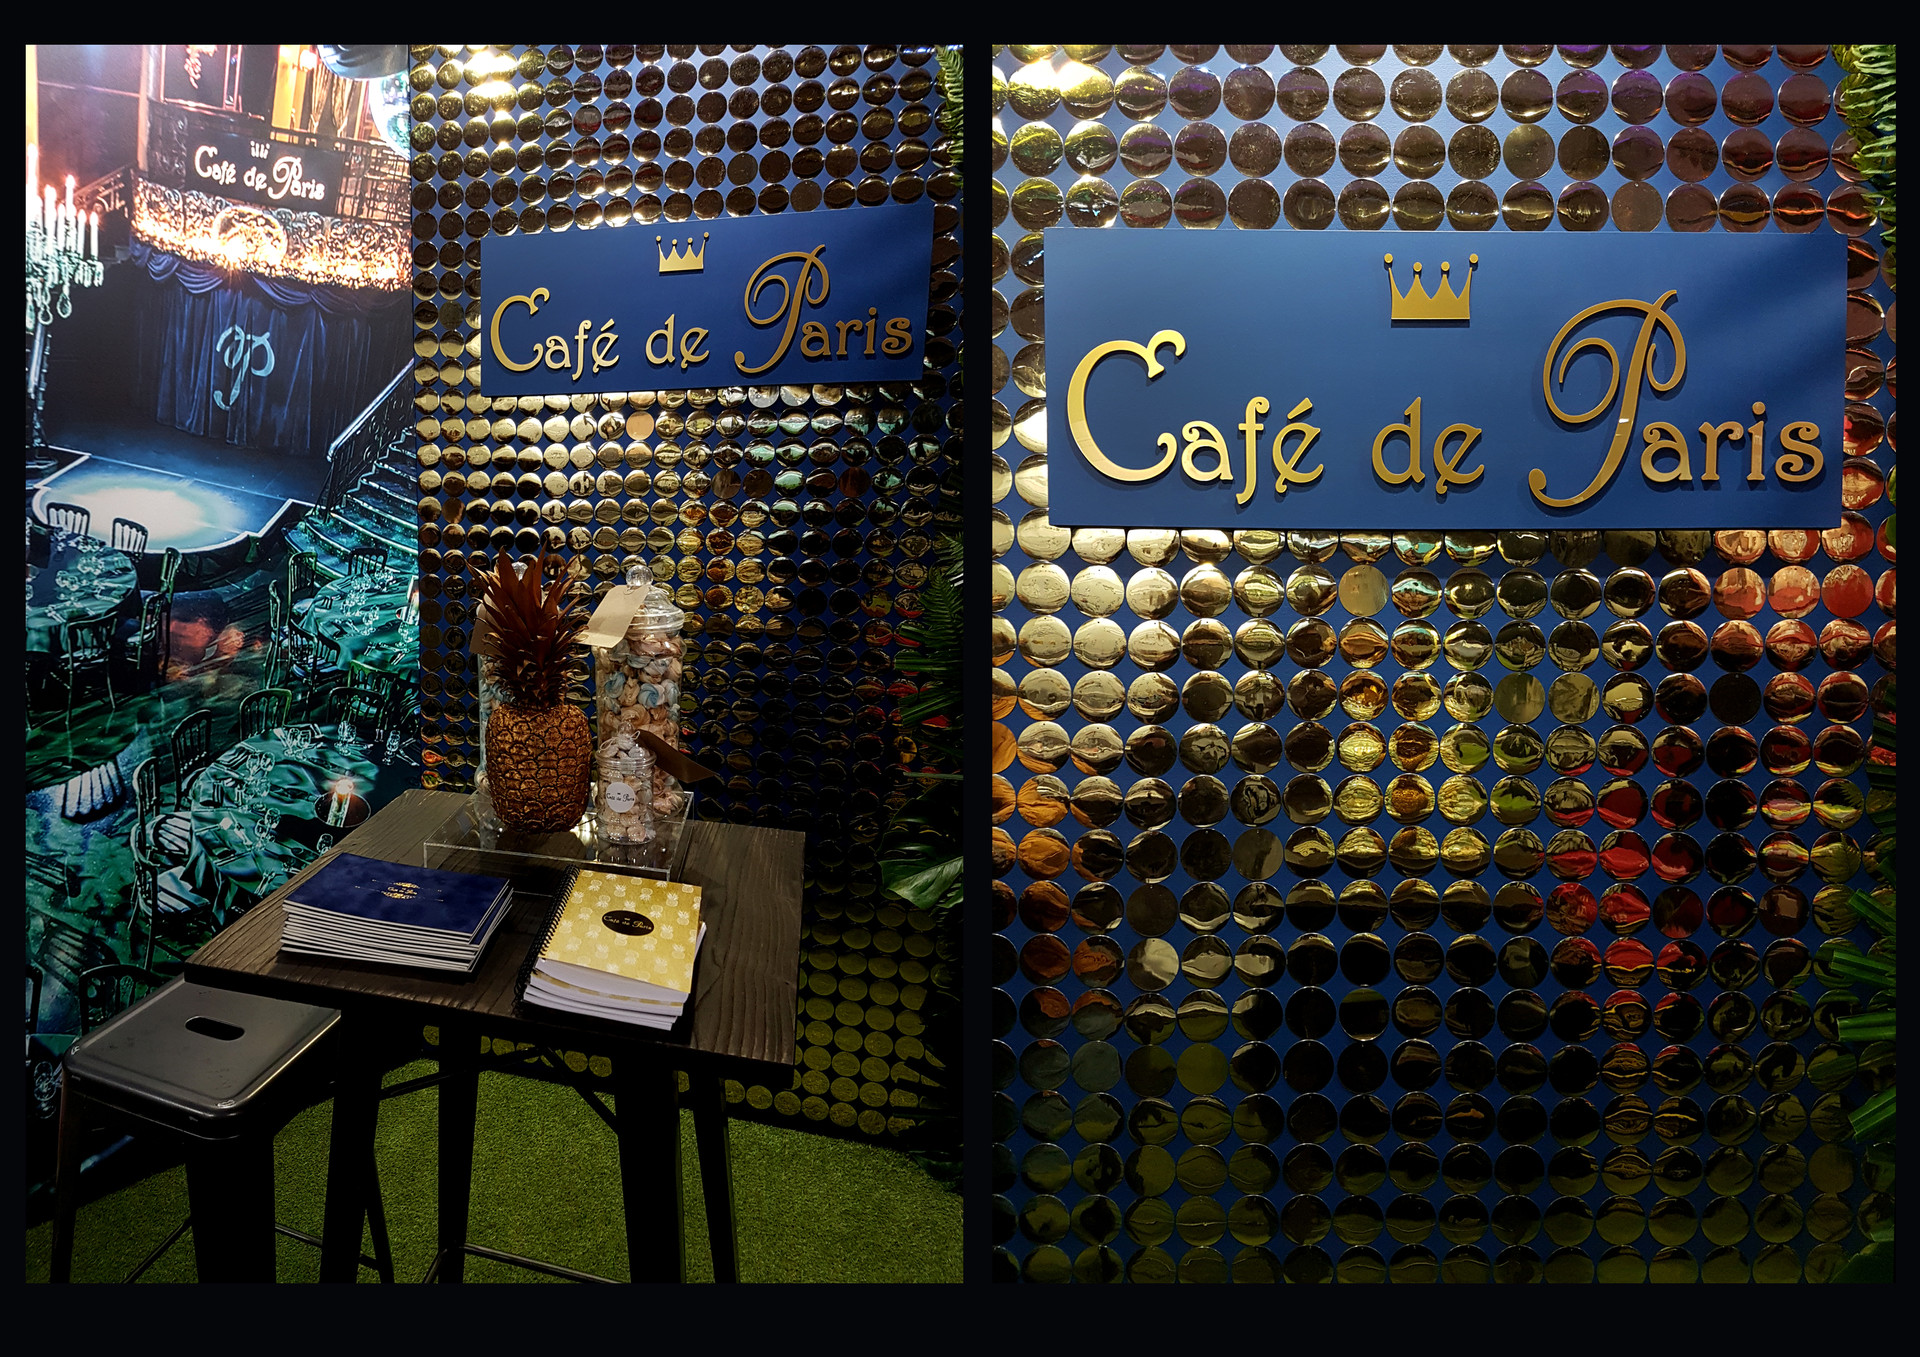 Darling Events, Cafe de Paris stand at 'The London Summer Events Show', Jan 2018